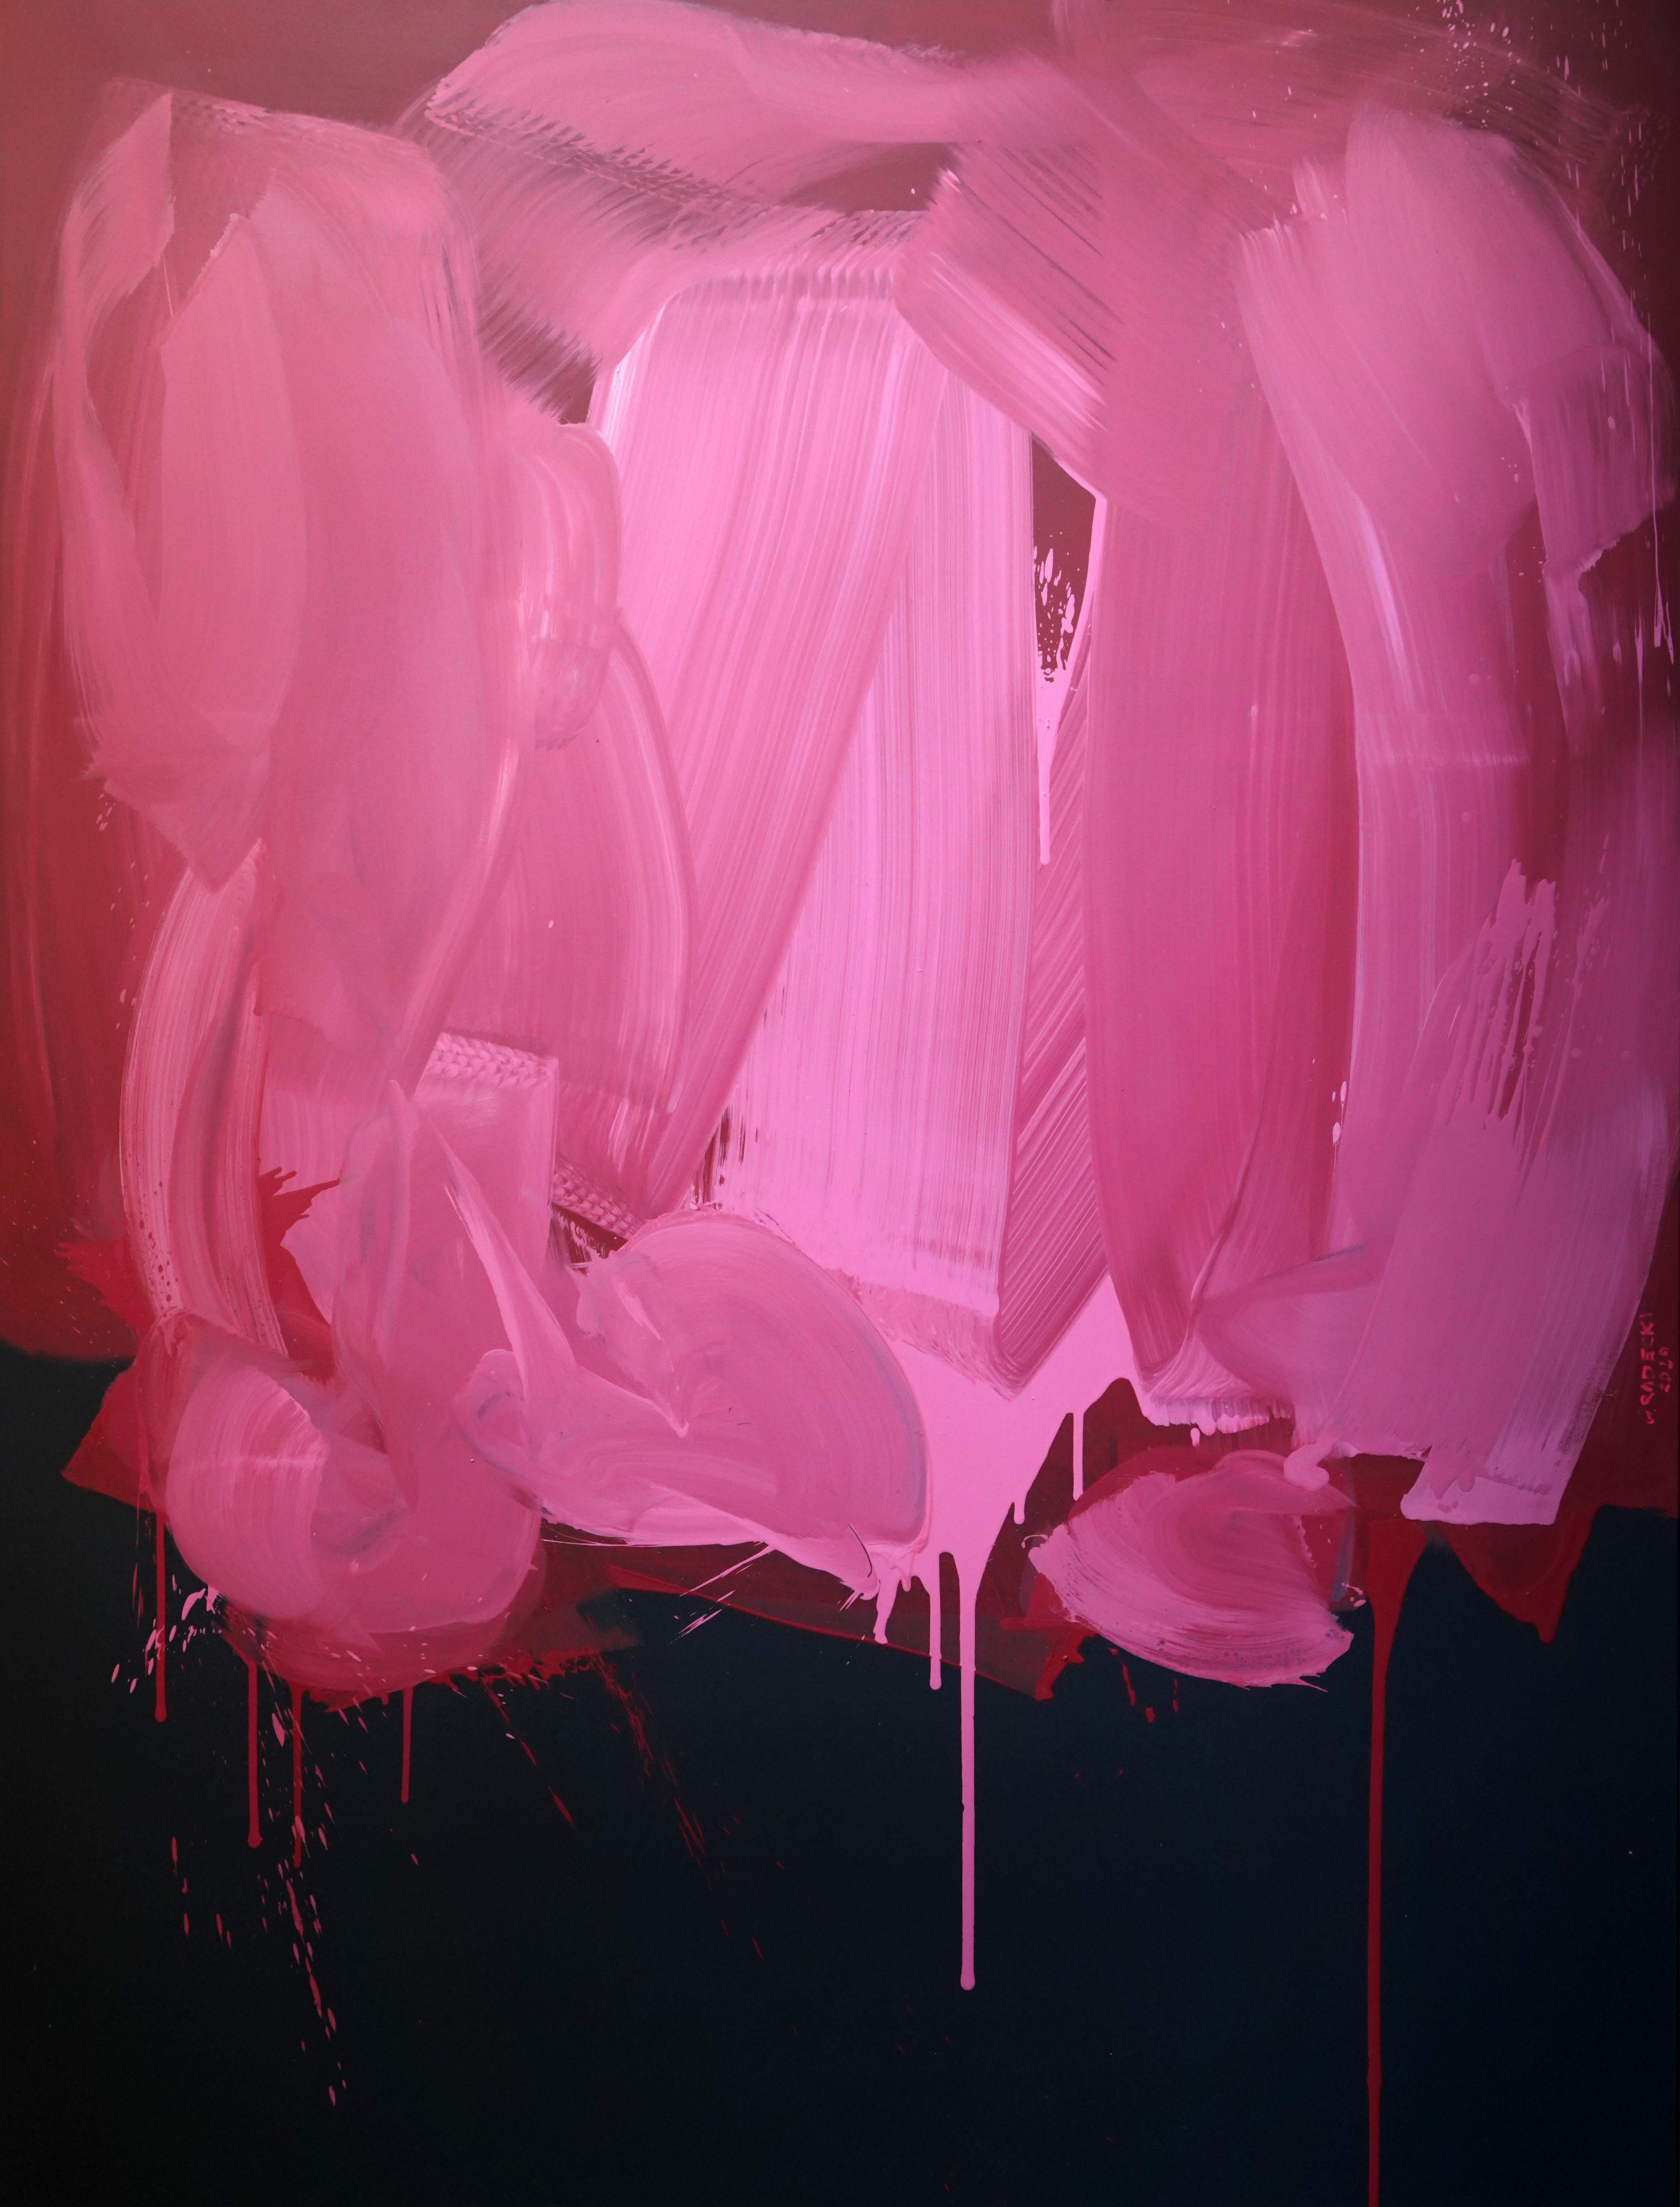 Pink on Black - Series Blobs - Colourful Expression, XXXL Format Oil Painting